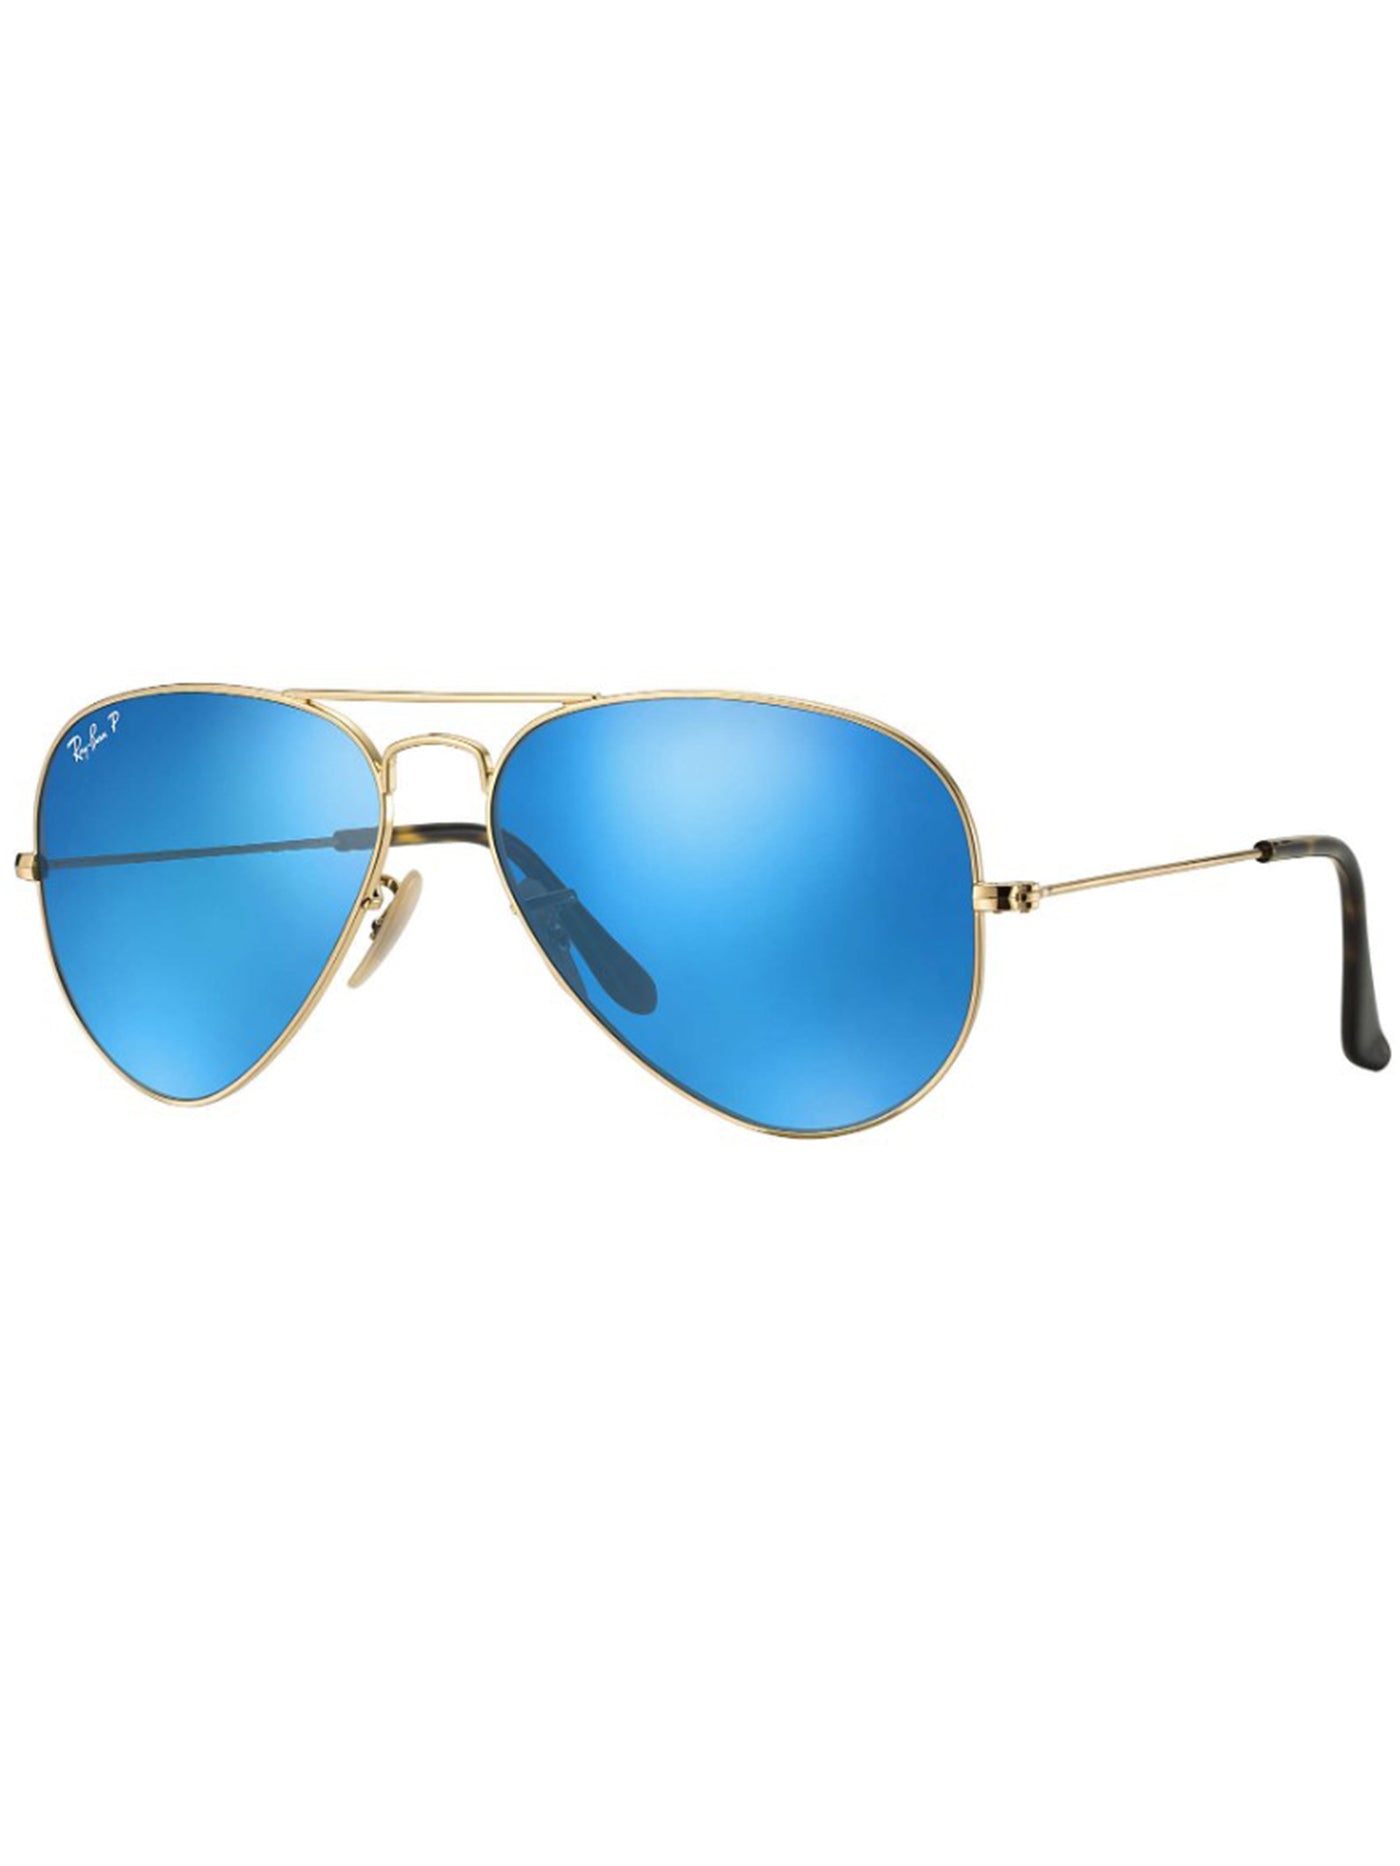 GOLD/BLUE FLASH POLARIZED